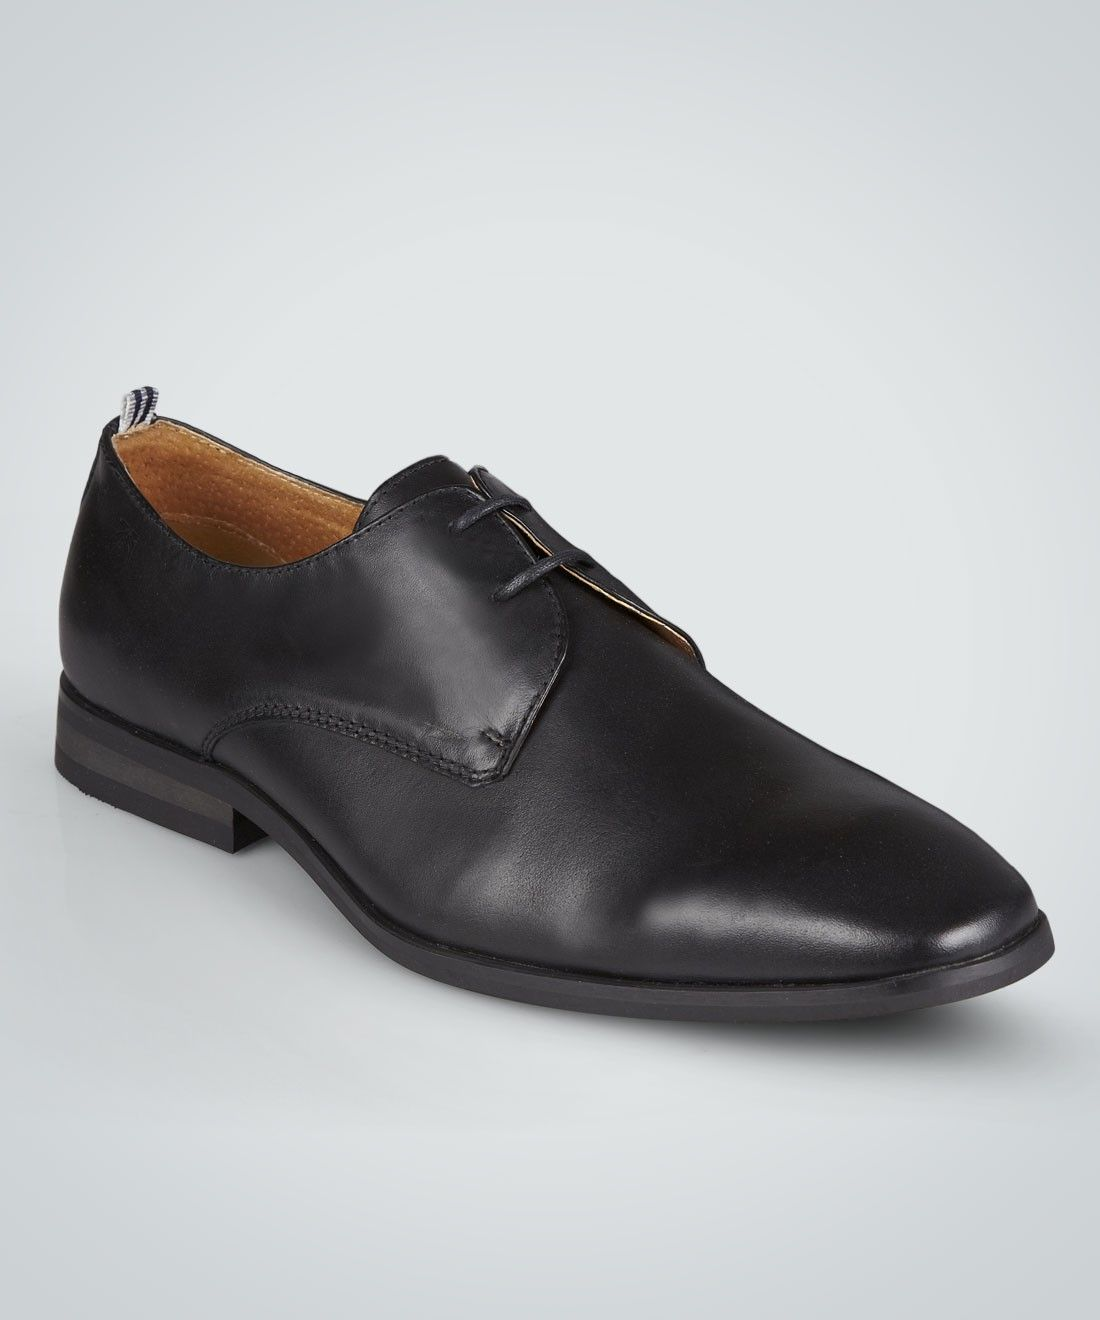 A sleek leather Derby shoe is a simple-looking classic must-have for any  man's foot locker. Ours features an EVA sole and chisel toe